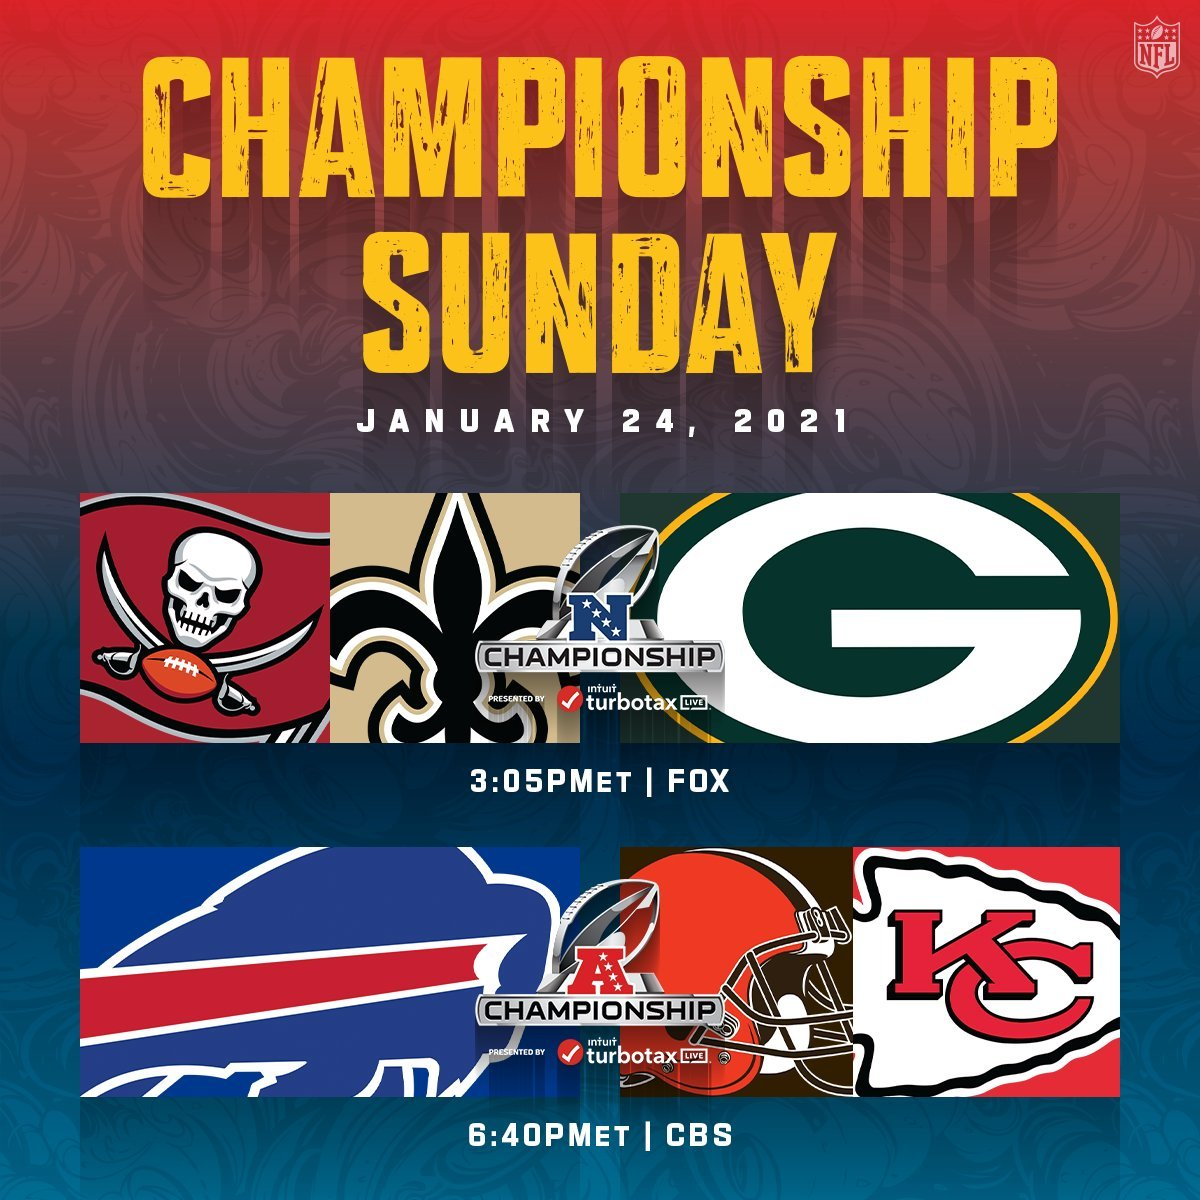 The @BuffaloBills are going to the AFC Championship & the @packers are heading to their second consecutive NFC Championship! #GoPackGo #BillsMafia #NFLPlayoffs